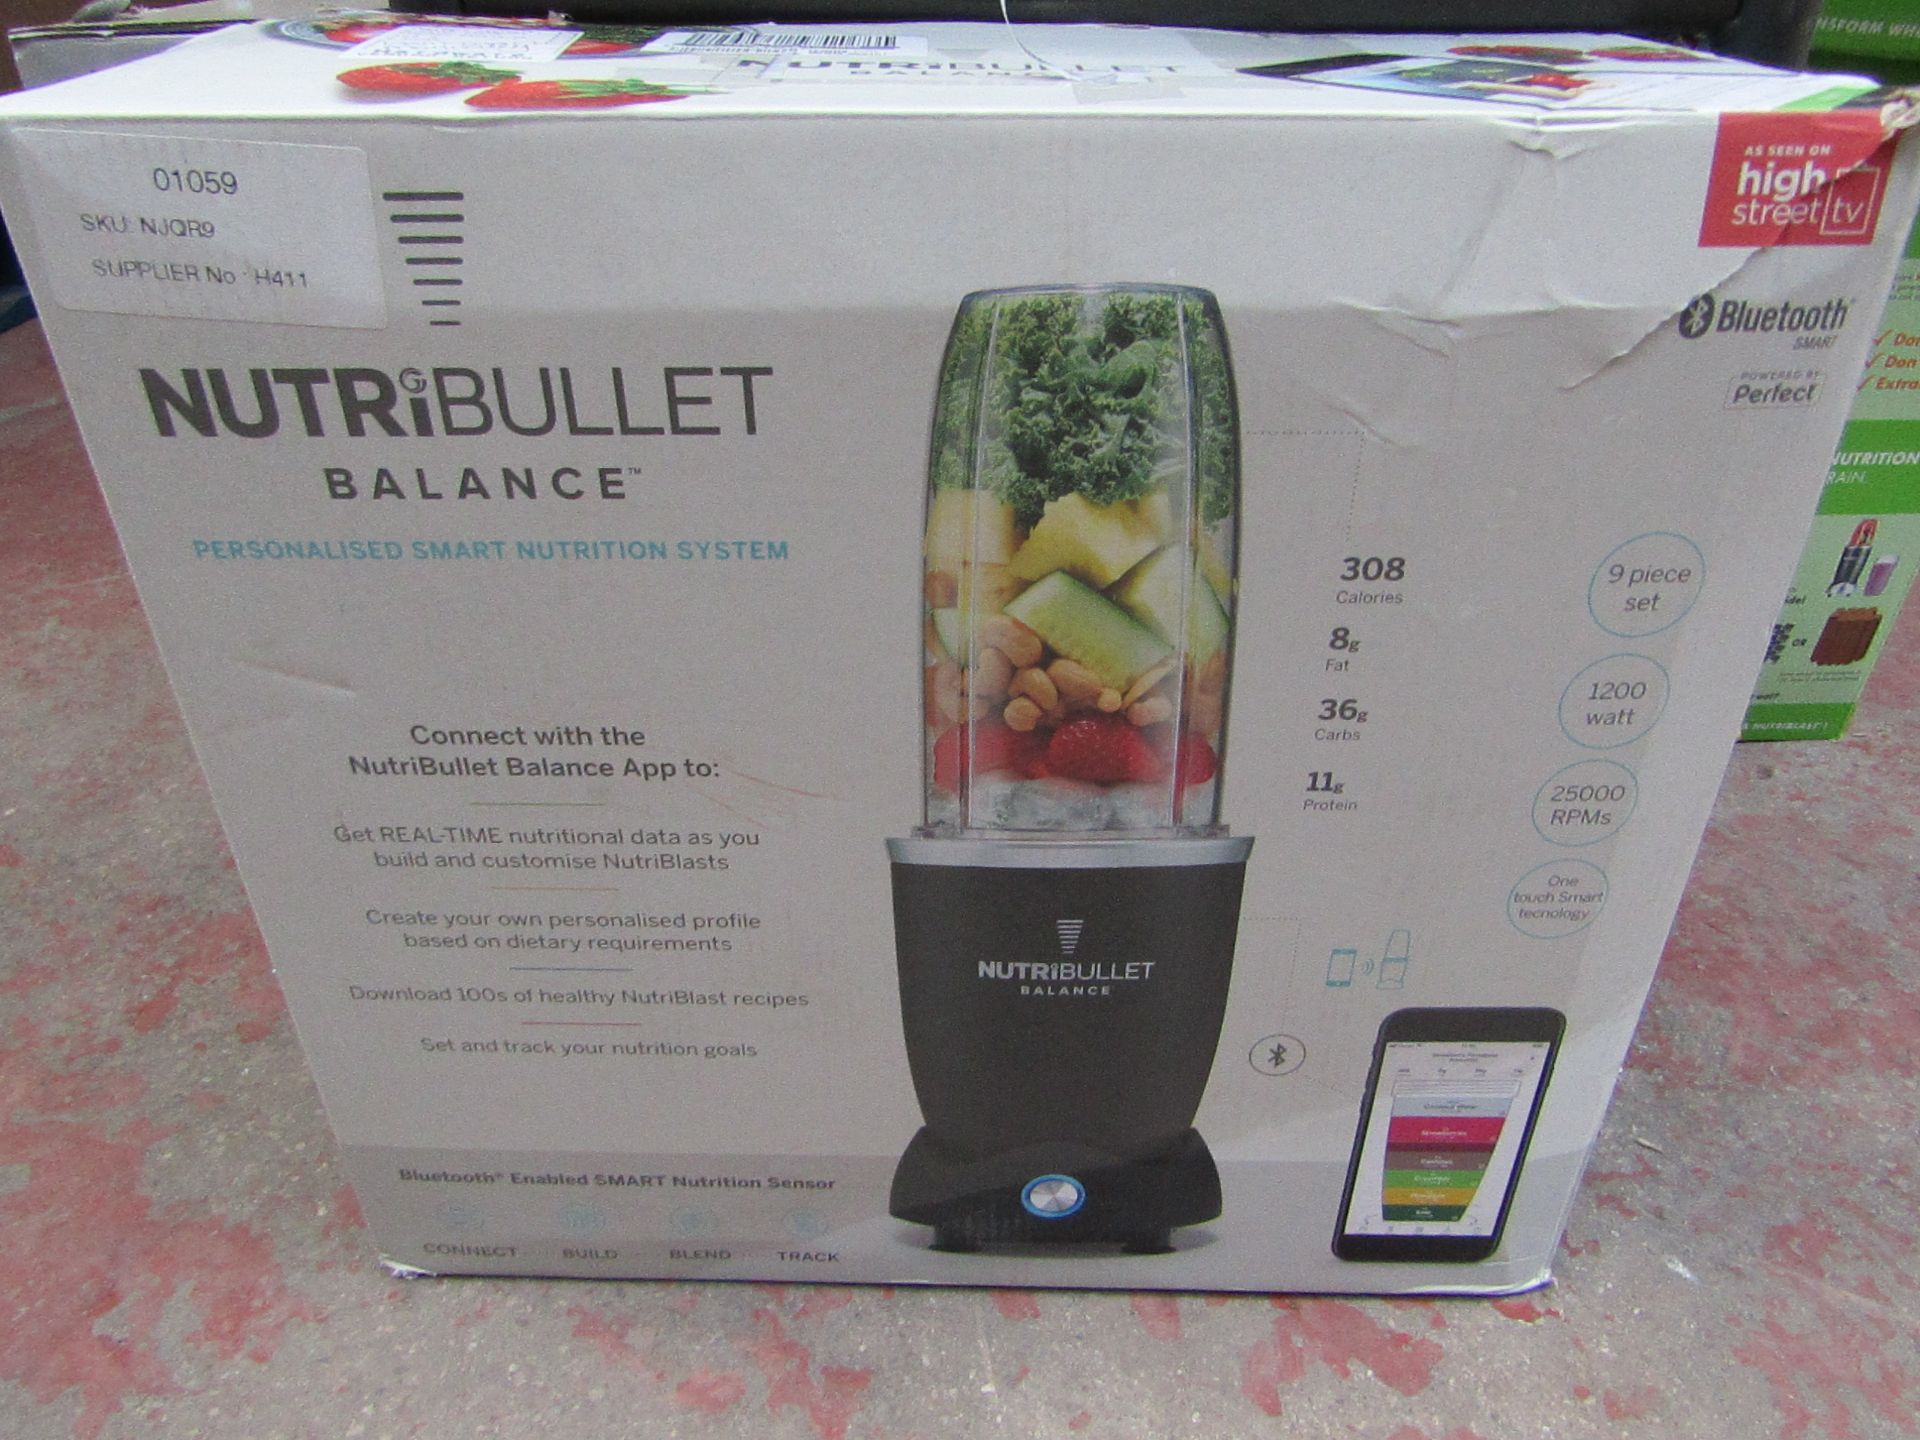   1X   NUTRIBULLET BALANCE   UNCHECKED AND BOXED   NO ONLINE RE-SALE   SKU C5060541512900   RRP £